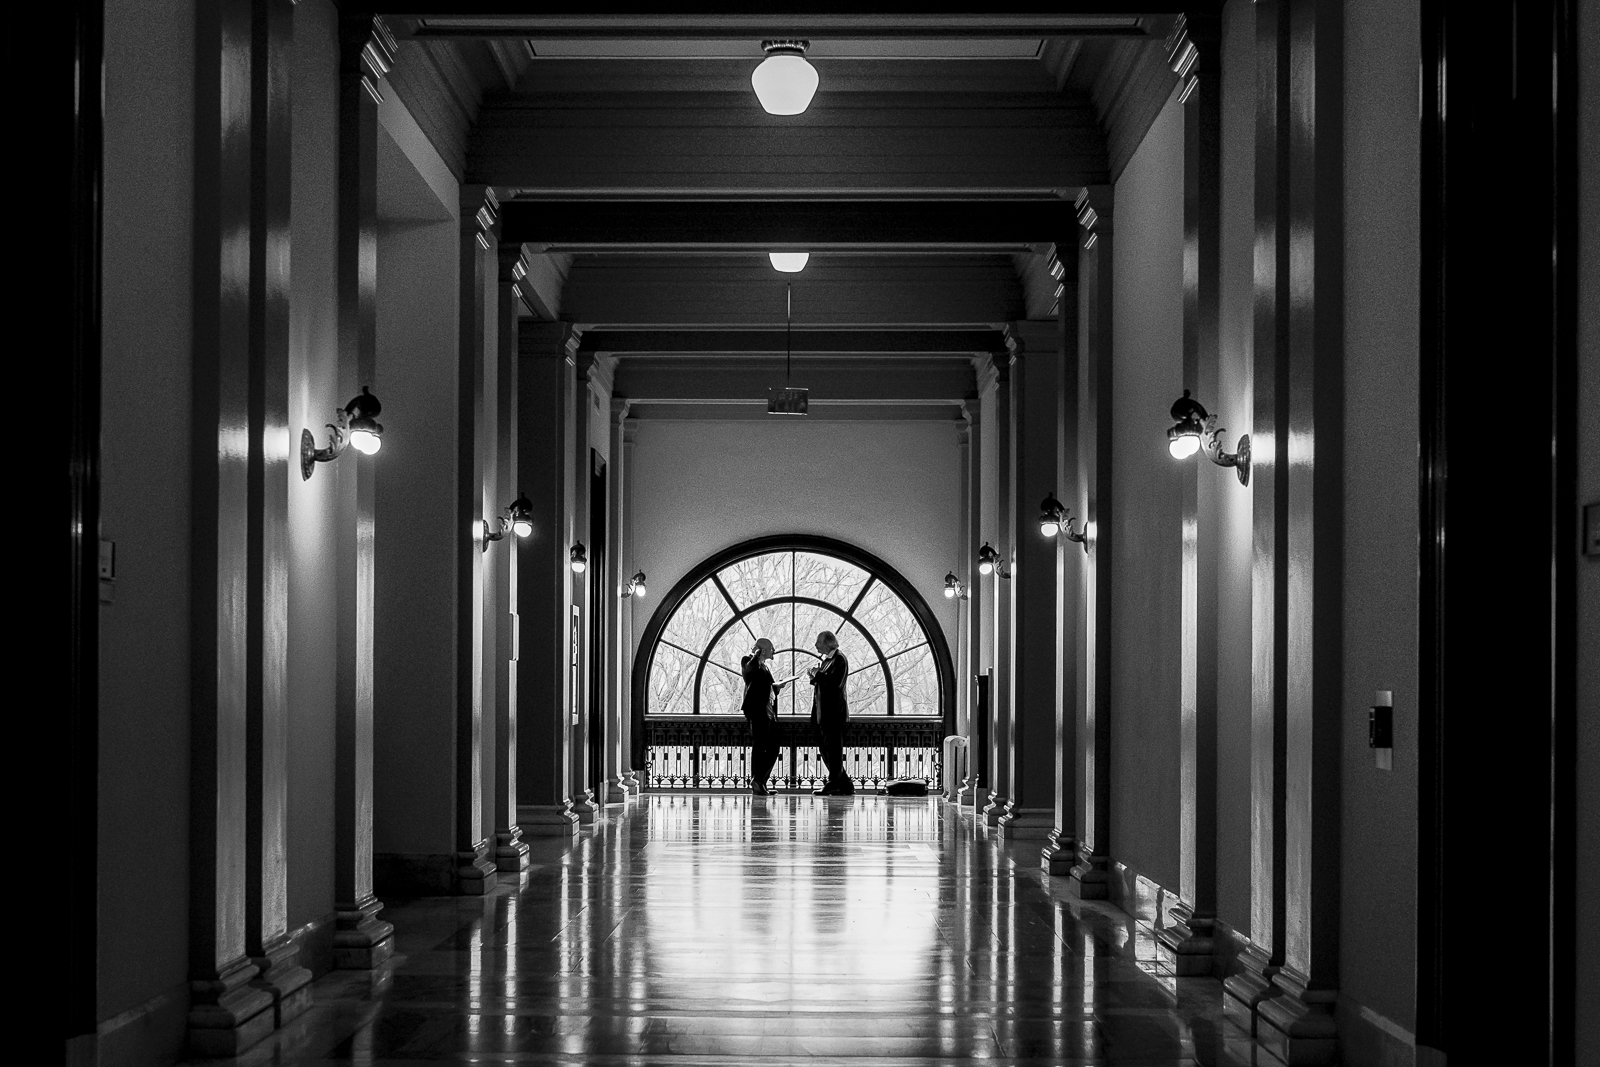 Two men hold a meeting in the hallway of the Russell Senate Office Building on Capitol Hill in Washington, D.C.